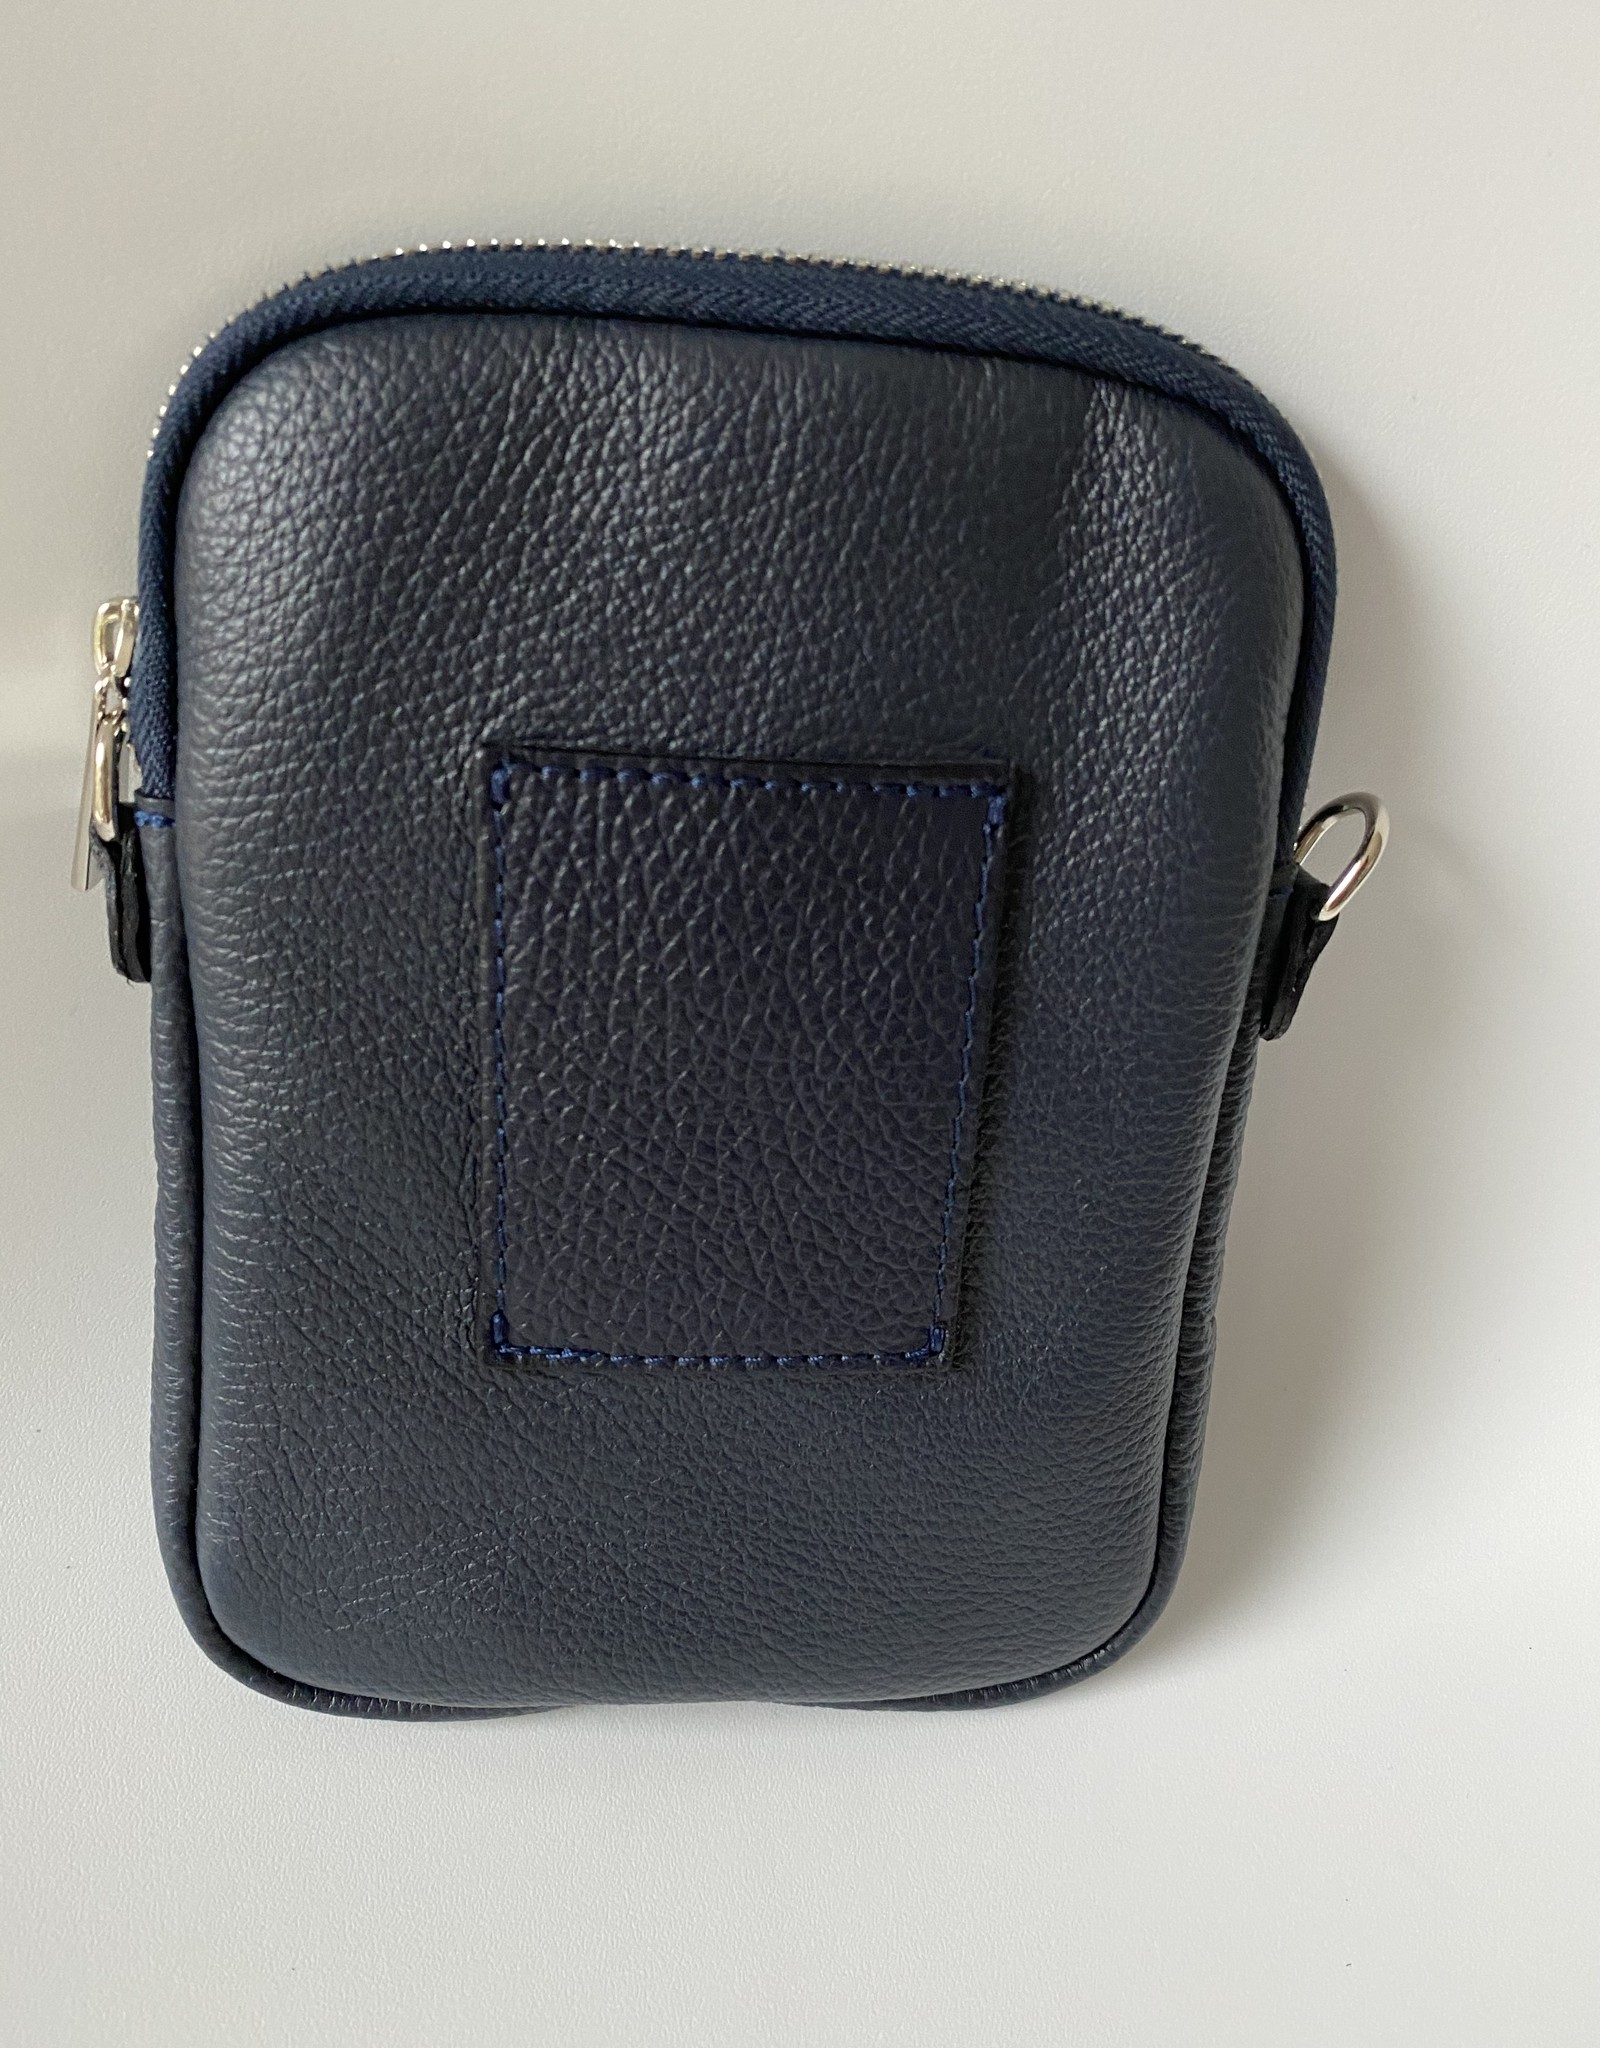 Little leather bag ideal for mobile phone.